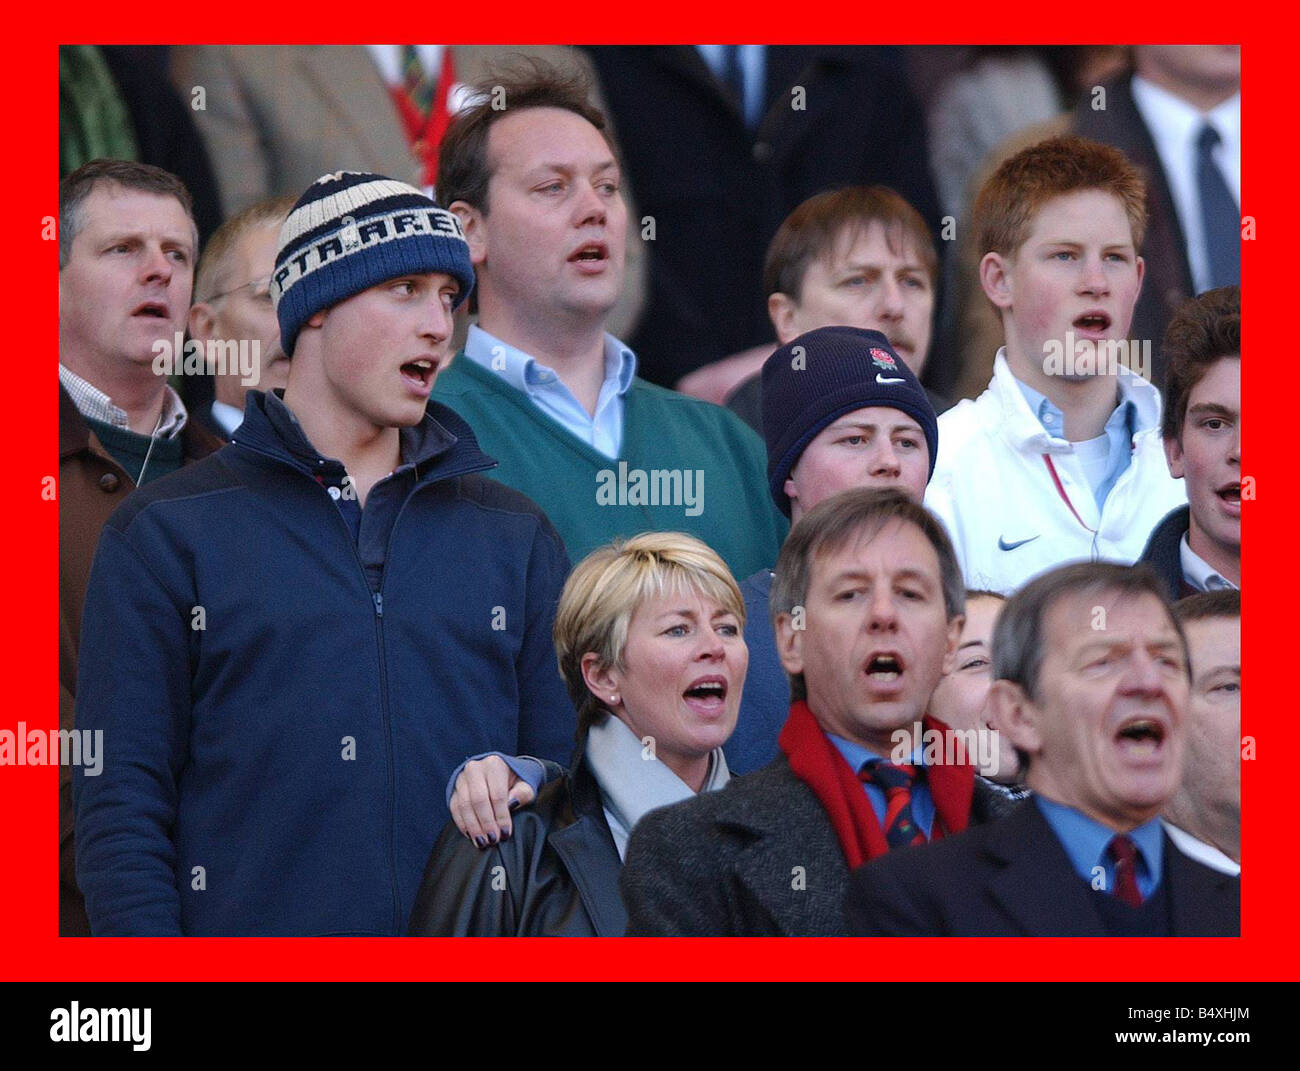 Prince William sings the National Anthem still wearing his wooly hat while his brother Harry does things correctly - Stock Image